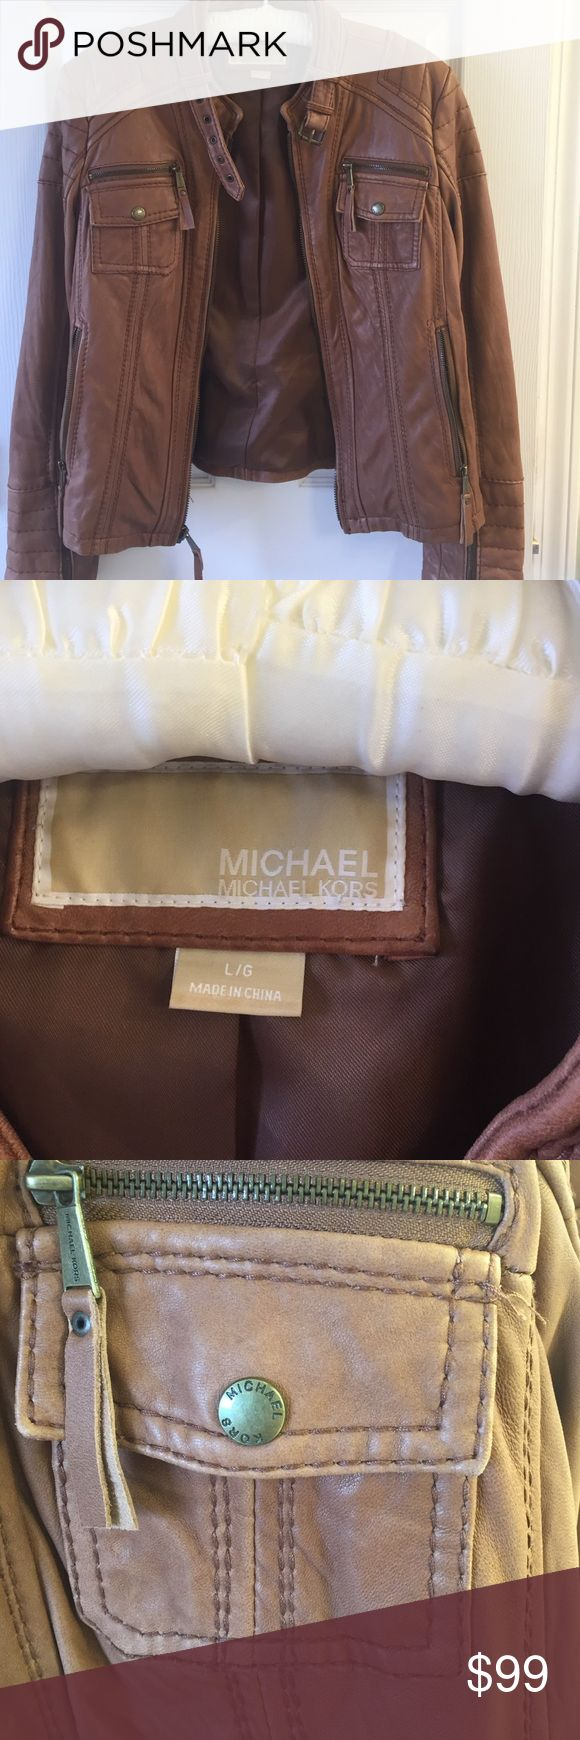 Michael Kors tan leather jacket Excellent shape, worn only 2-3 times.  Genuine leather, very soft.  Hits right at the hip.  Quilting on sleeves.  No wear or damage.  Motorcycle style MICHAEL Michael Kors Jackets & Coats